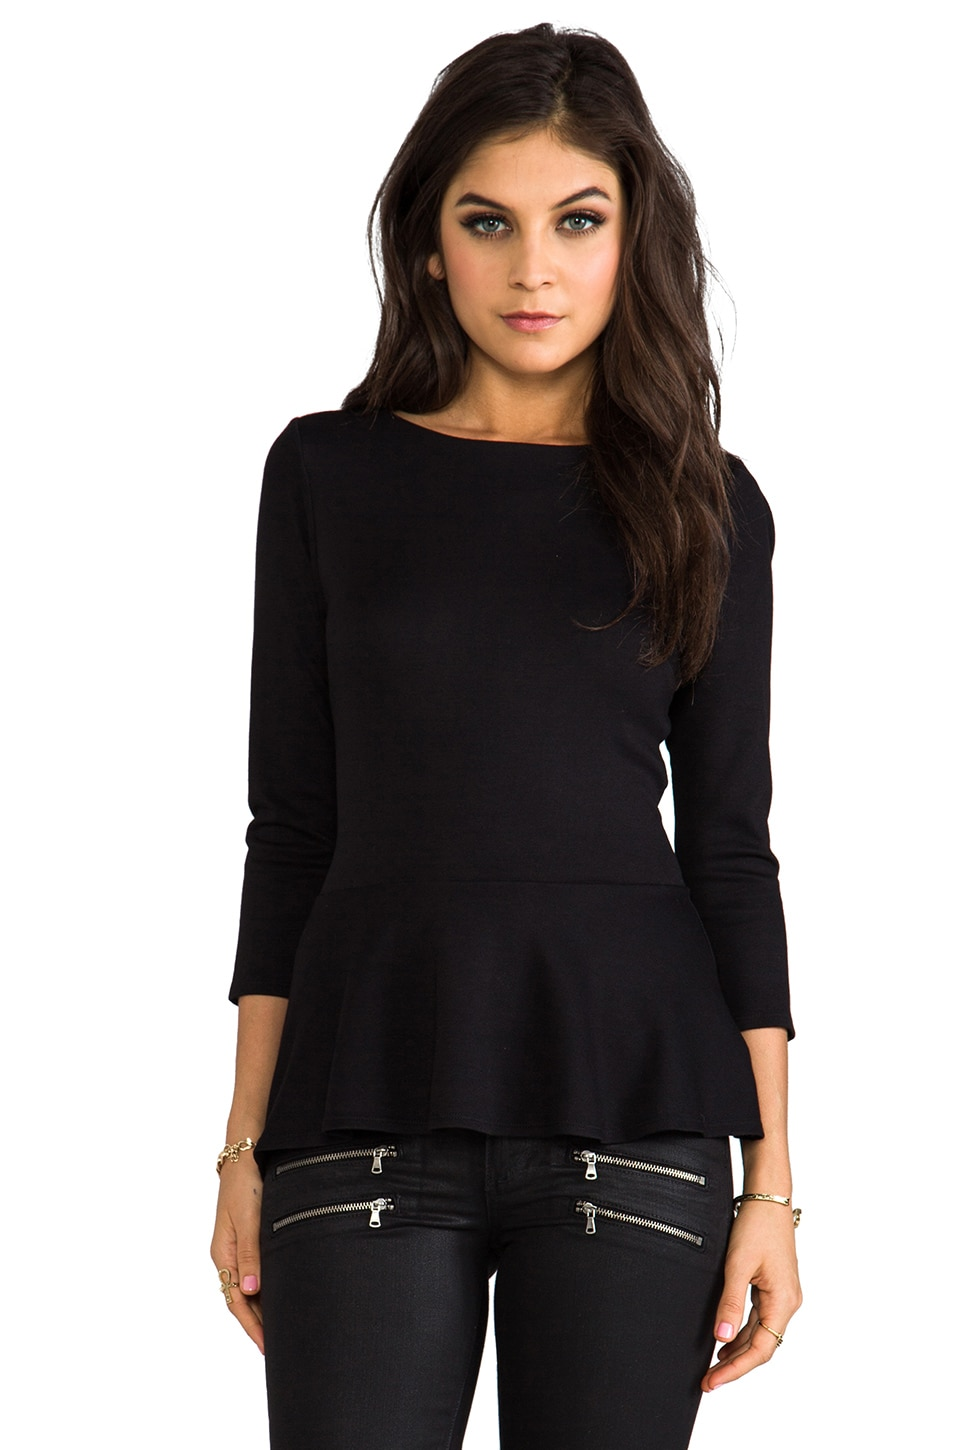 Velvet by Graham & Spencer Ponti Meg Peplum Top in Black